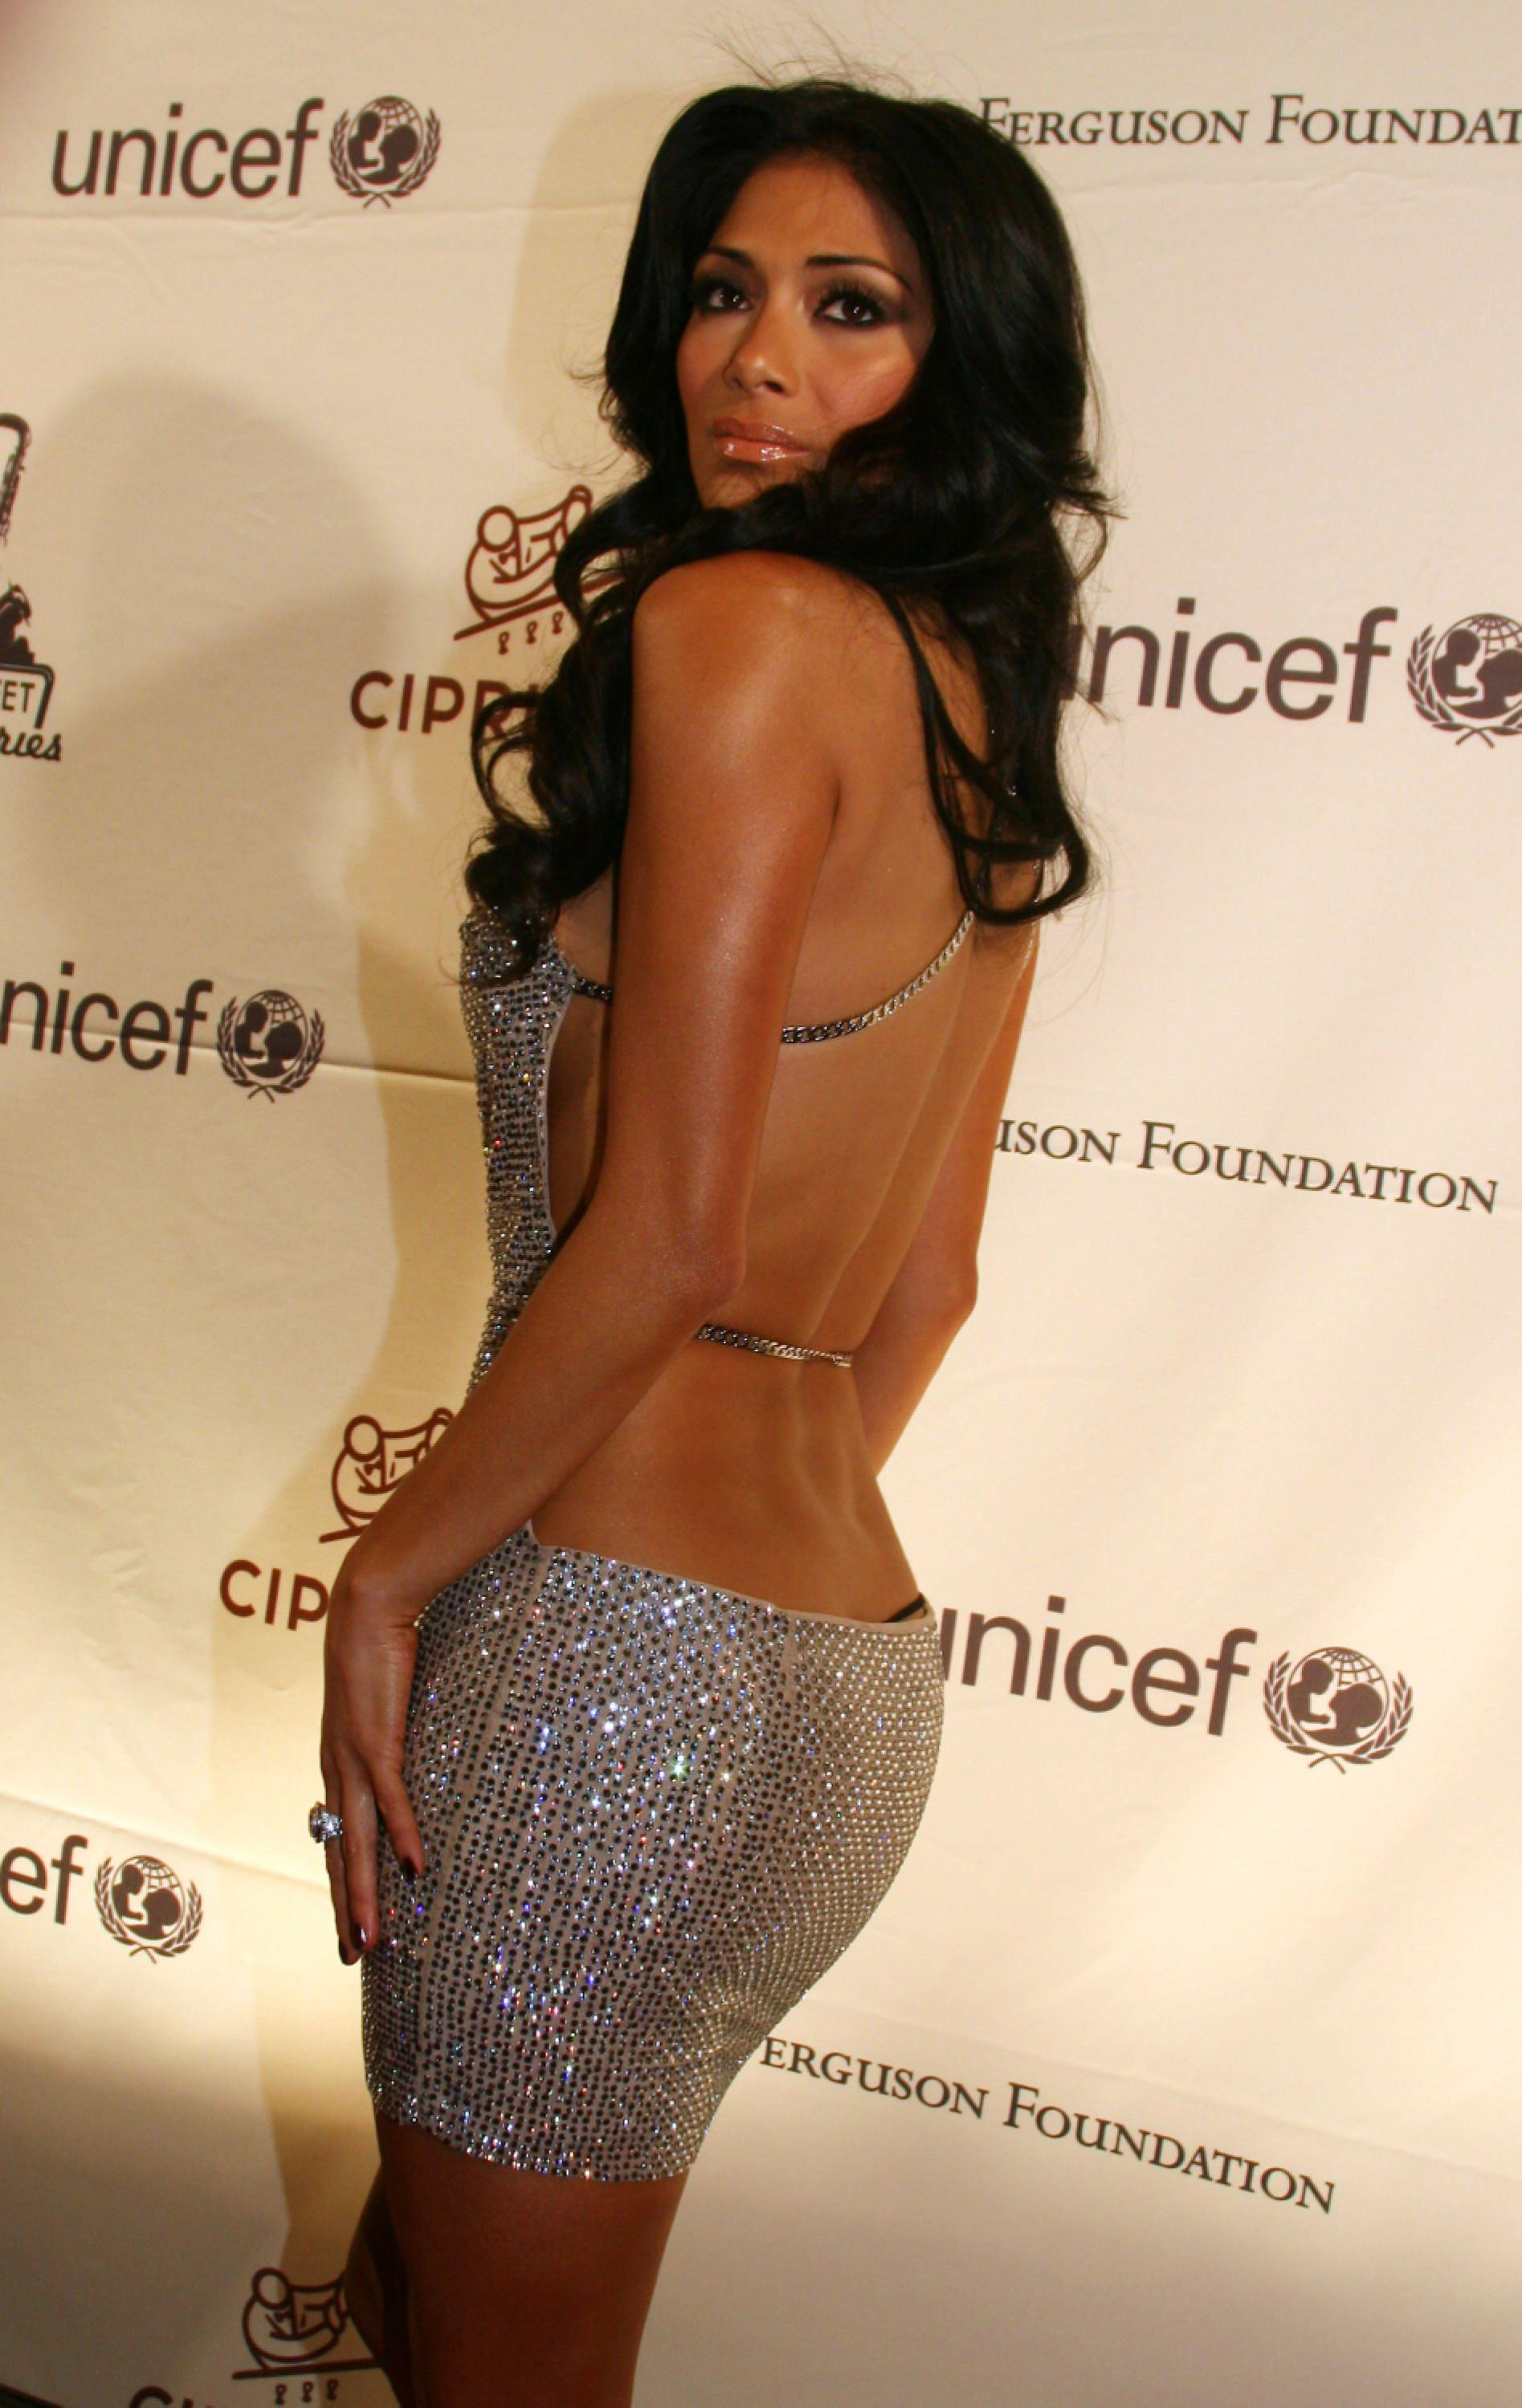 39 Hottest Nicole Scherzinger Pictures That Will Make You Melt-6542